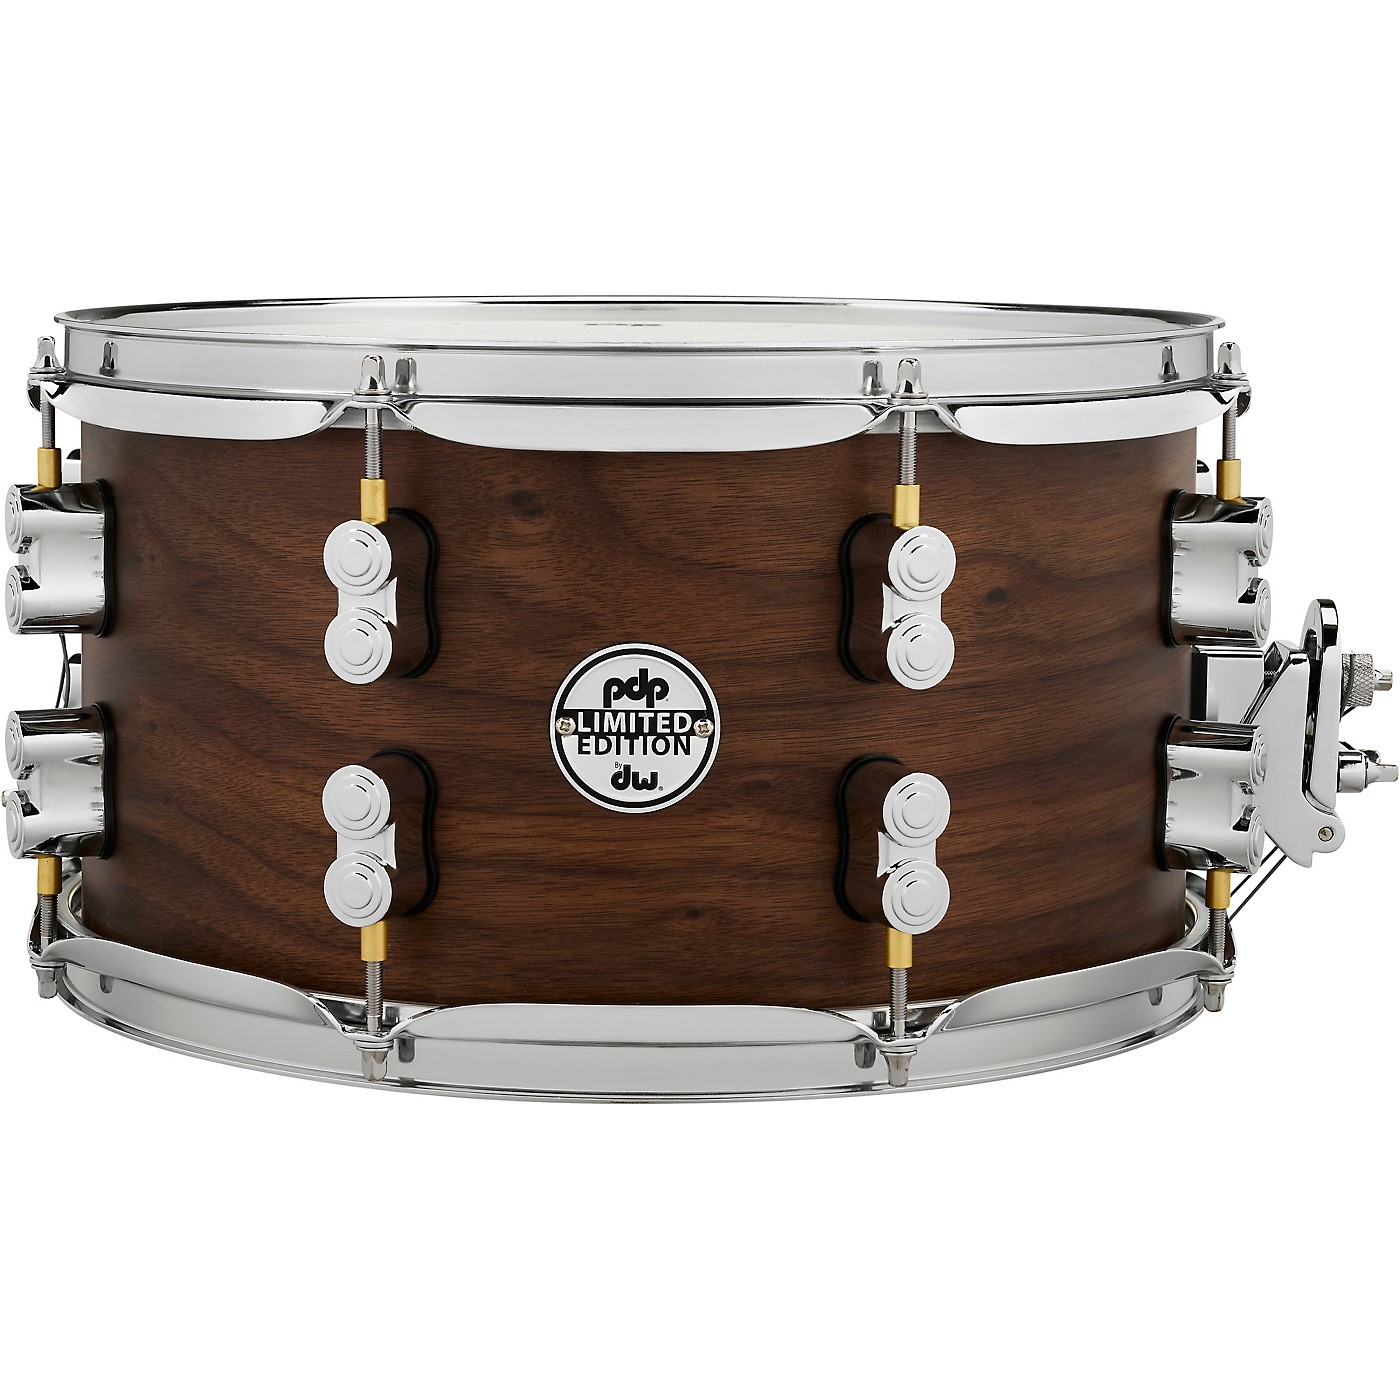 PDP by DW Concept Series Limited Edition 20-Ply Hybrid Walnut Maple Snare Drum thumbnail